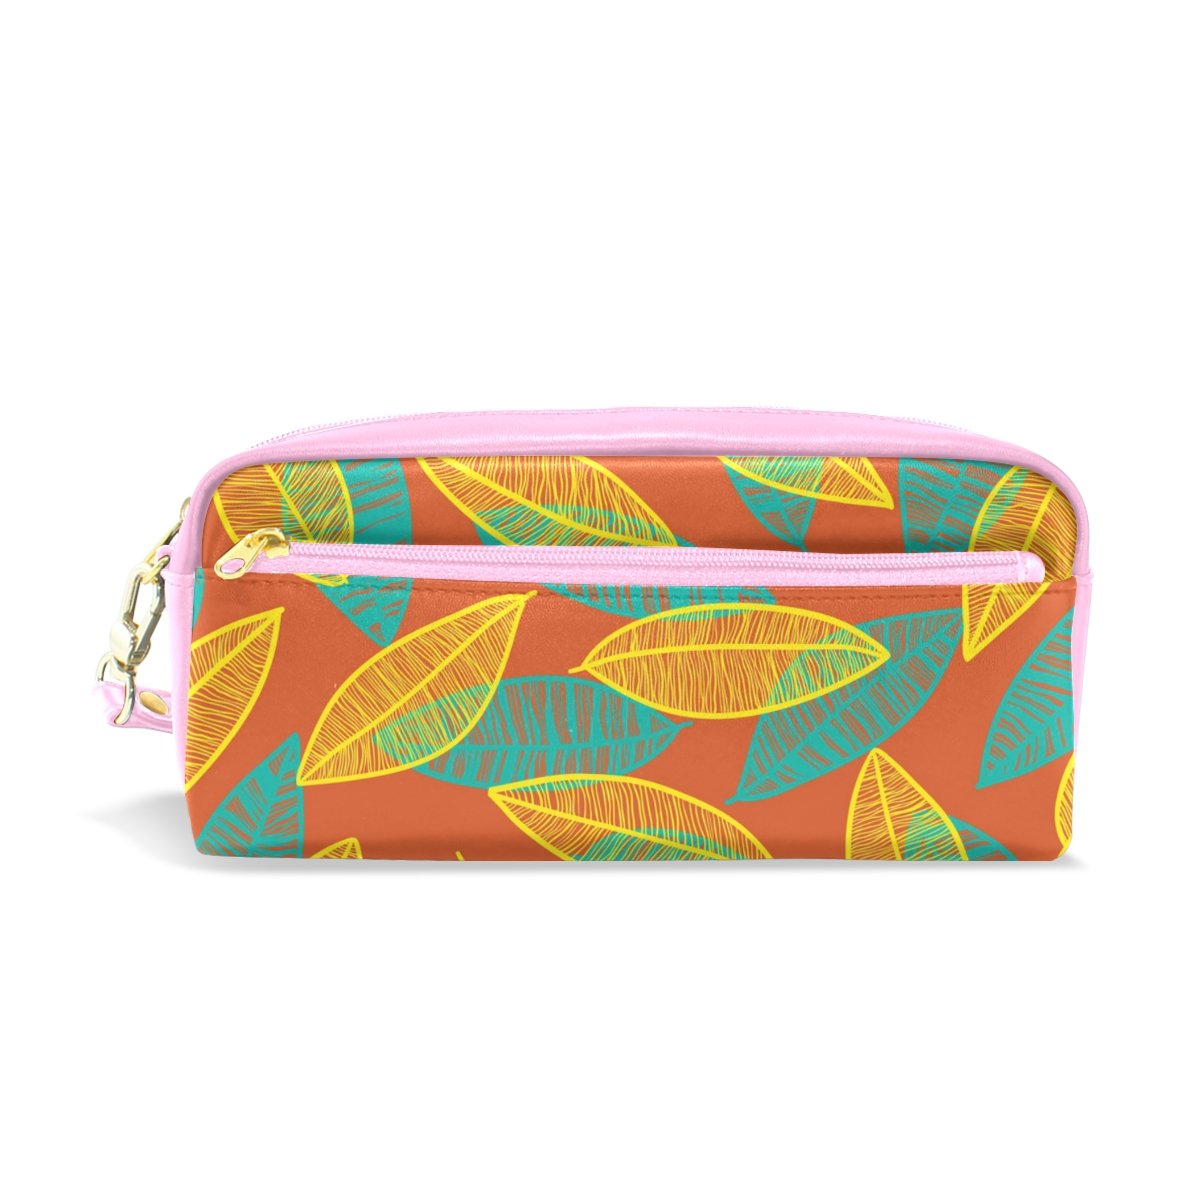 My Little Nest Hand Drawn Floral Leaves Cosmetic Makeup Bag Pencil Case Multi Function School Office Organizer Bag with Zipper Closure